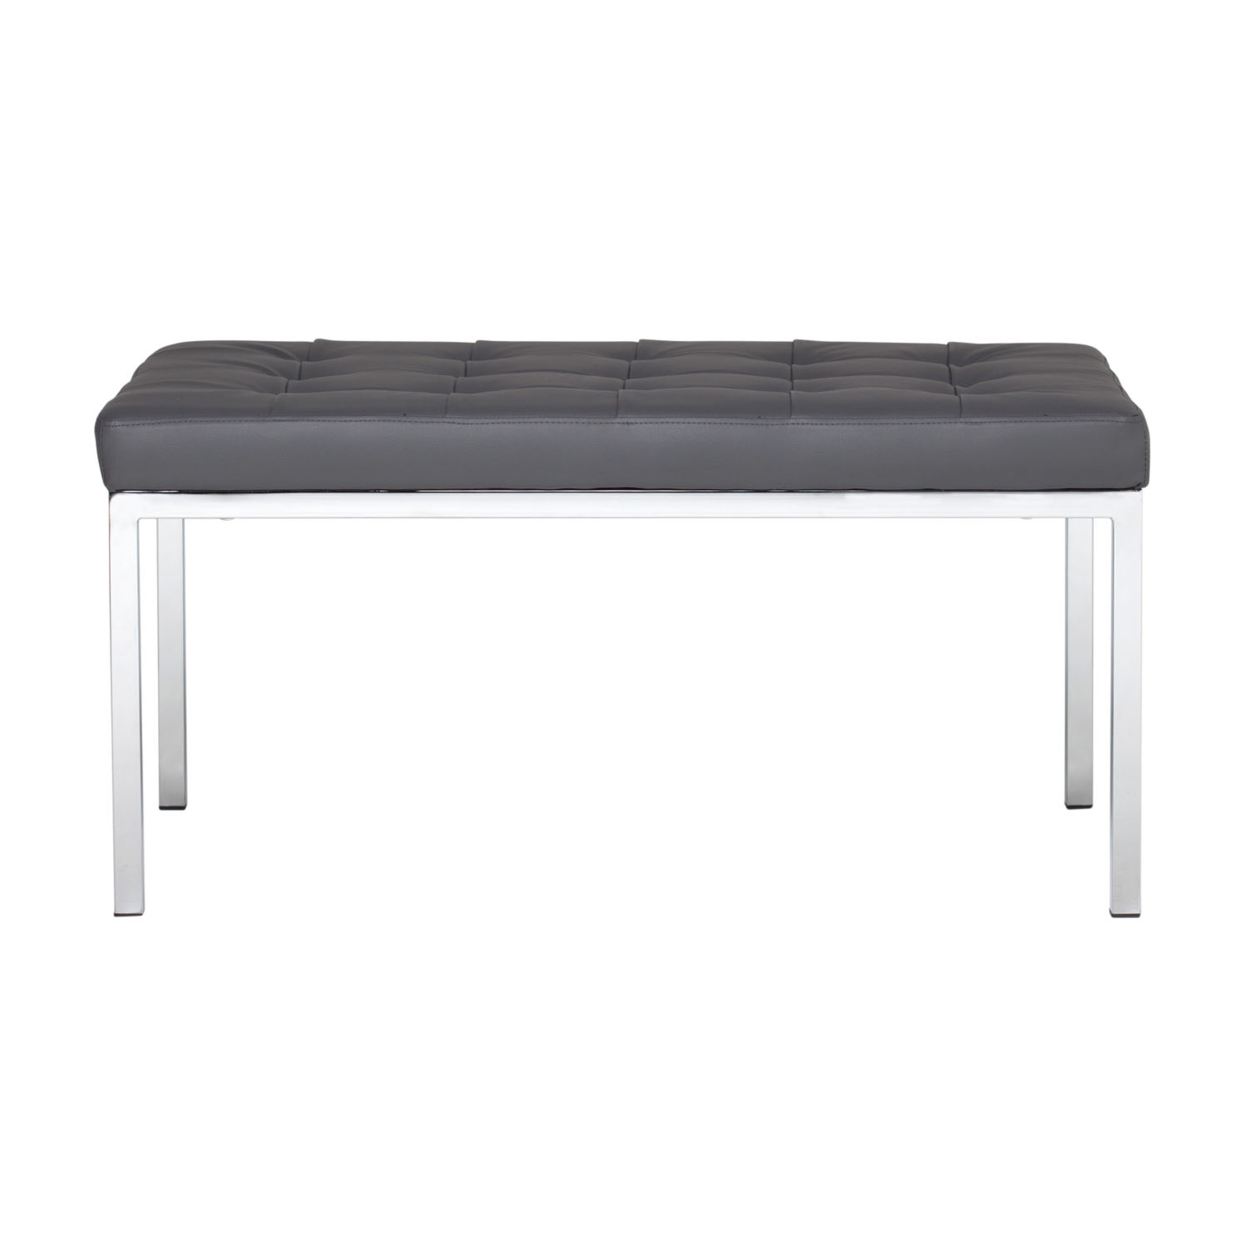 Offex Home Office Lintel 35 Bench Bonded Leather - Smoke offex home office plinth ottoman latte